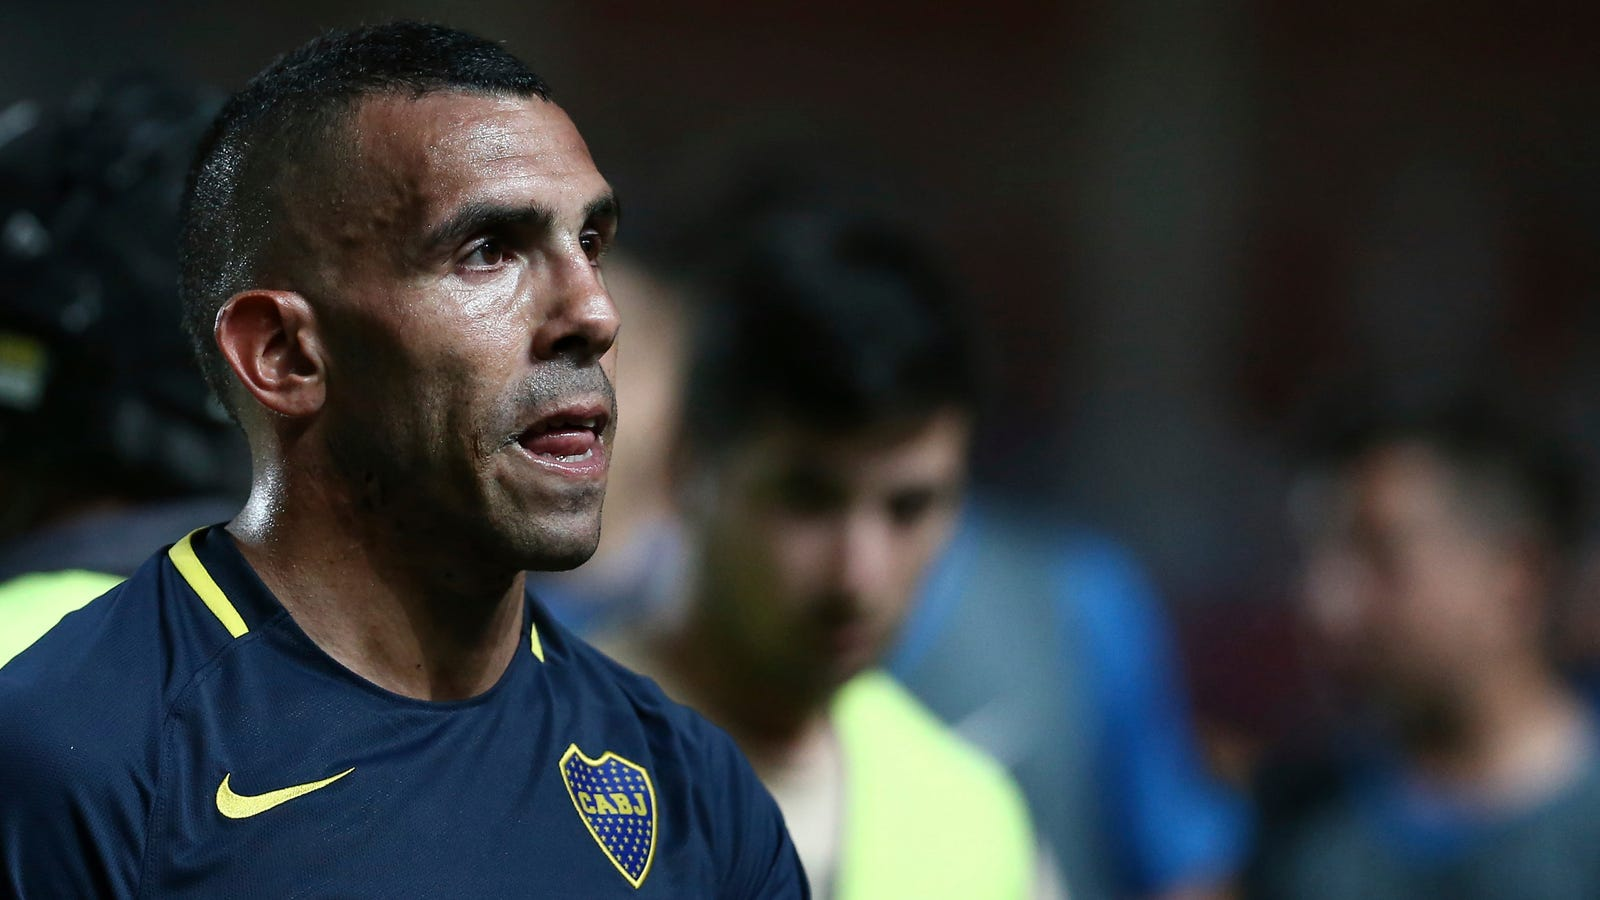 Carlos Tevez News Video and Gossip Deadspin